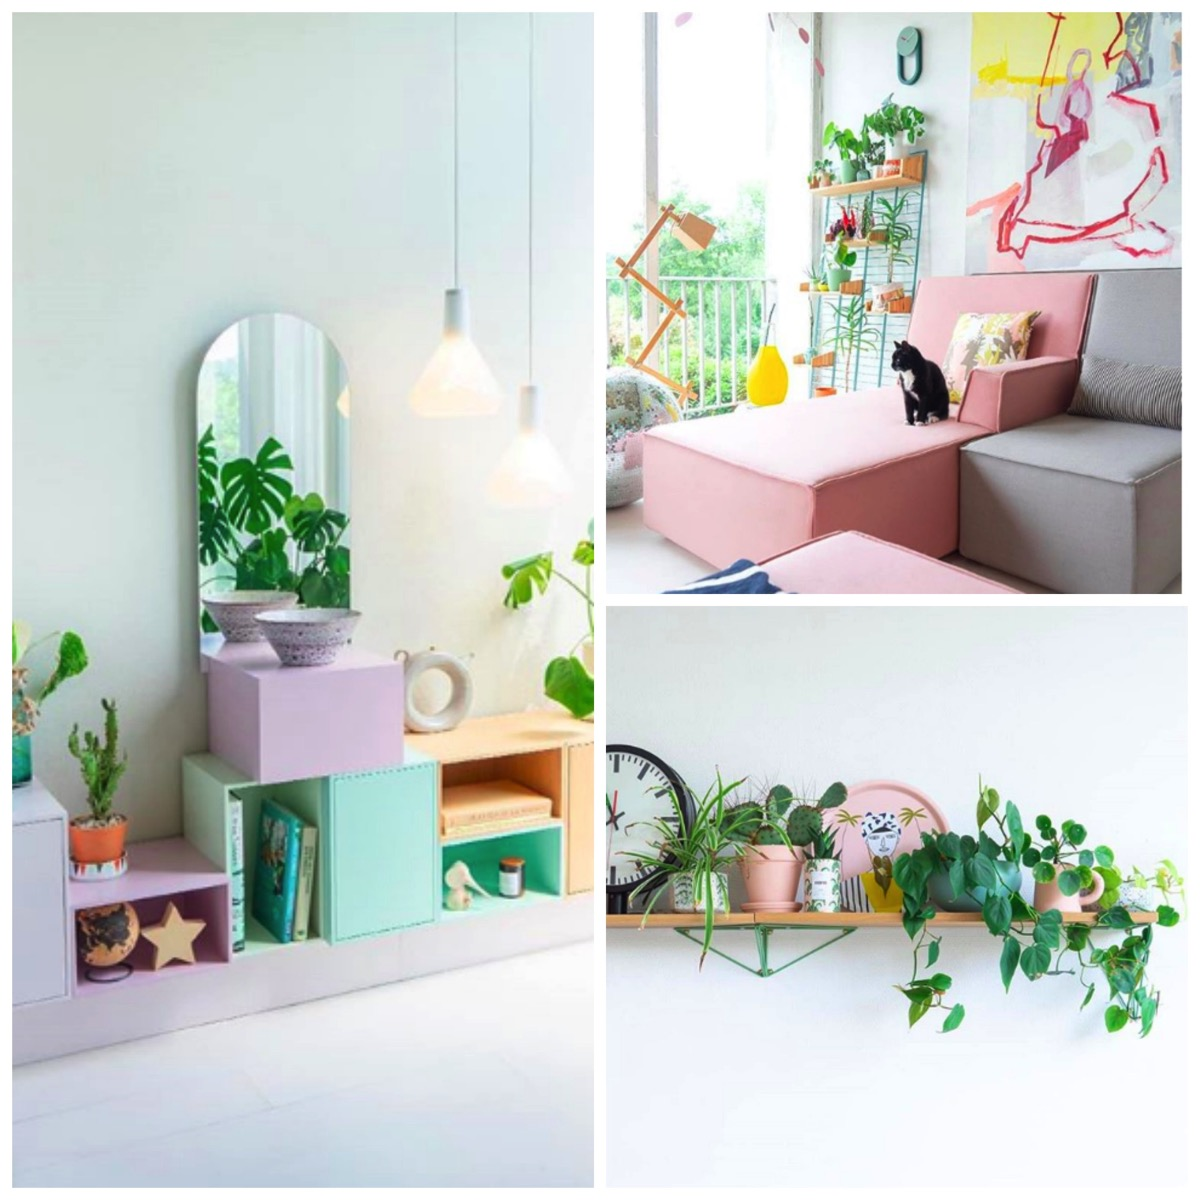 Modern french home decor with plants